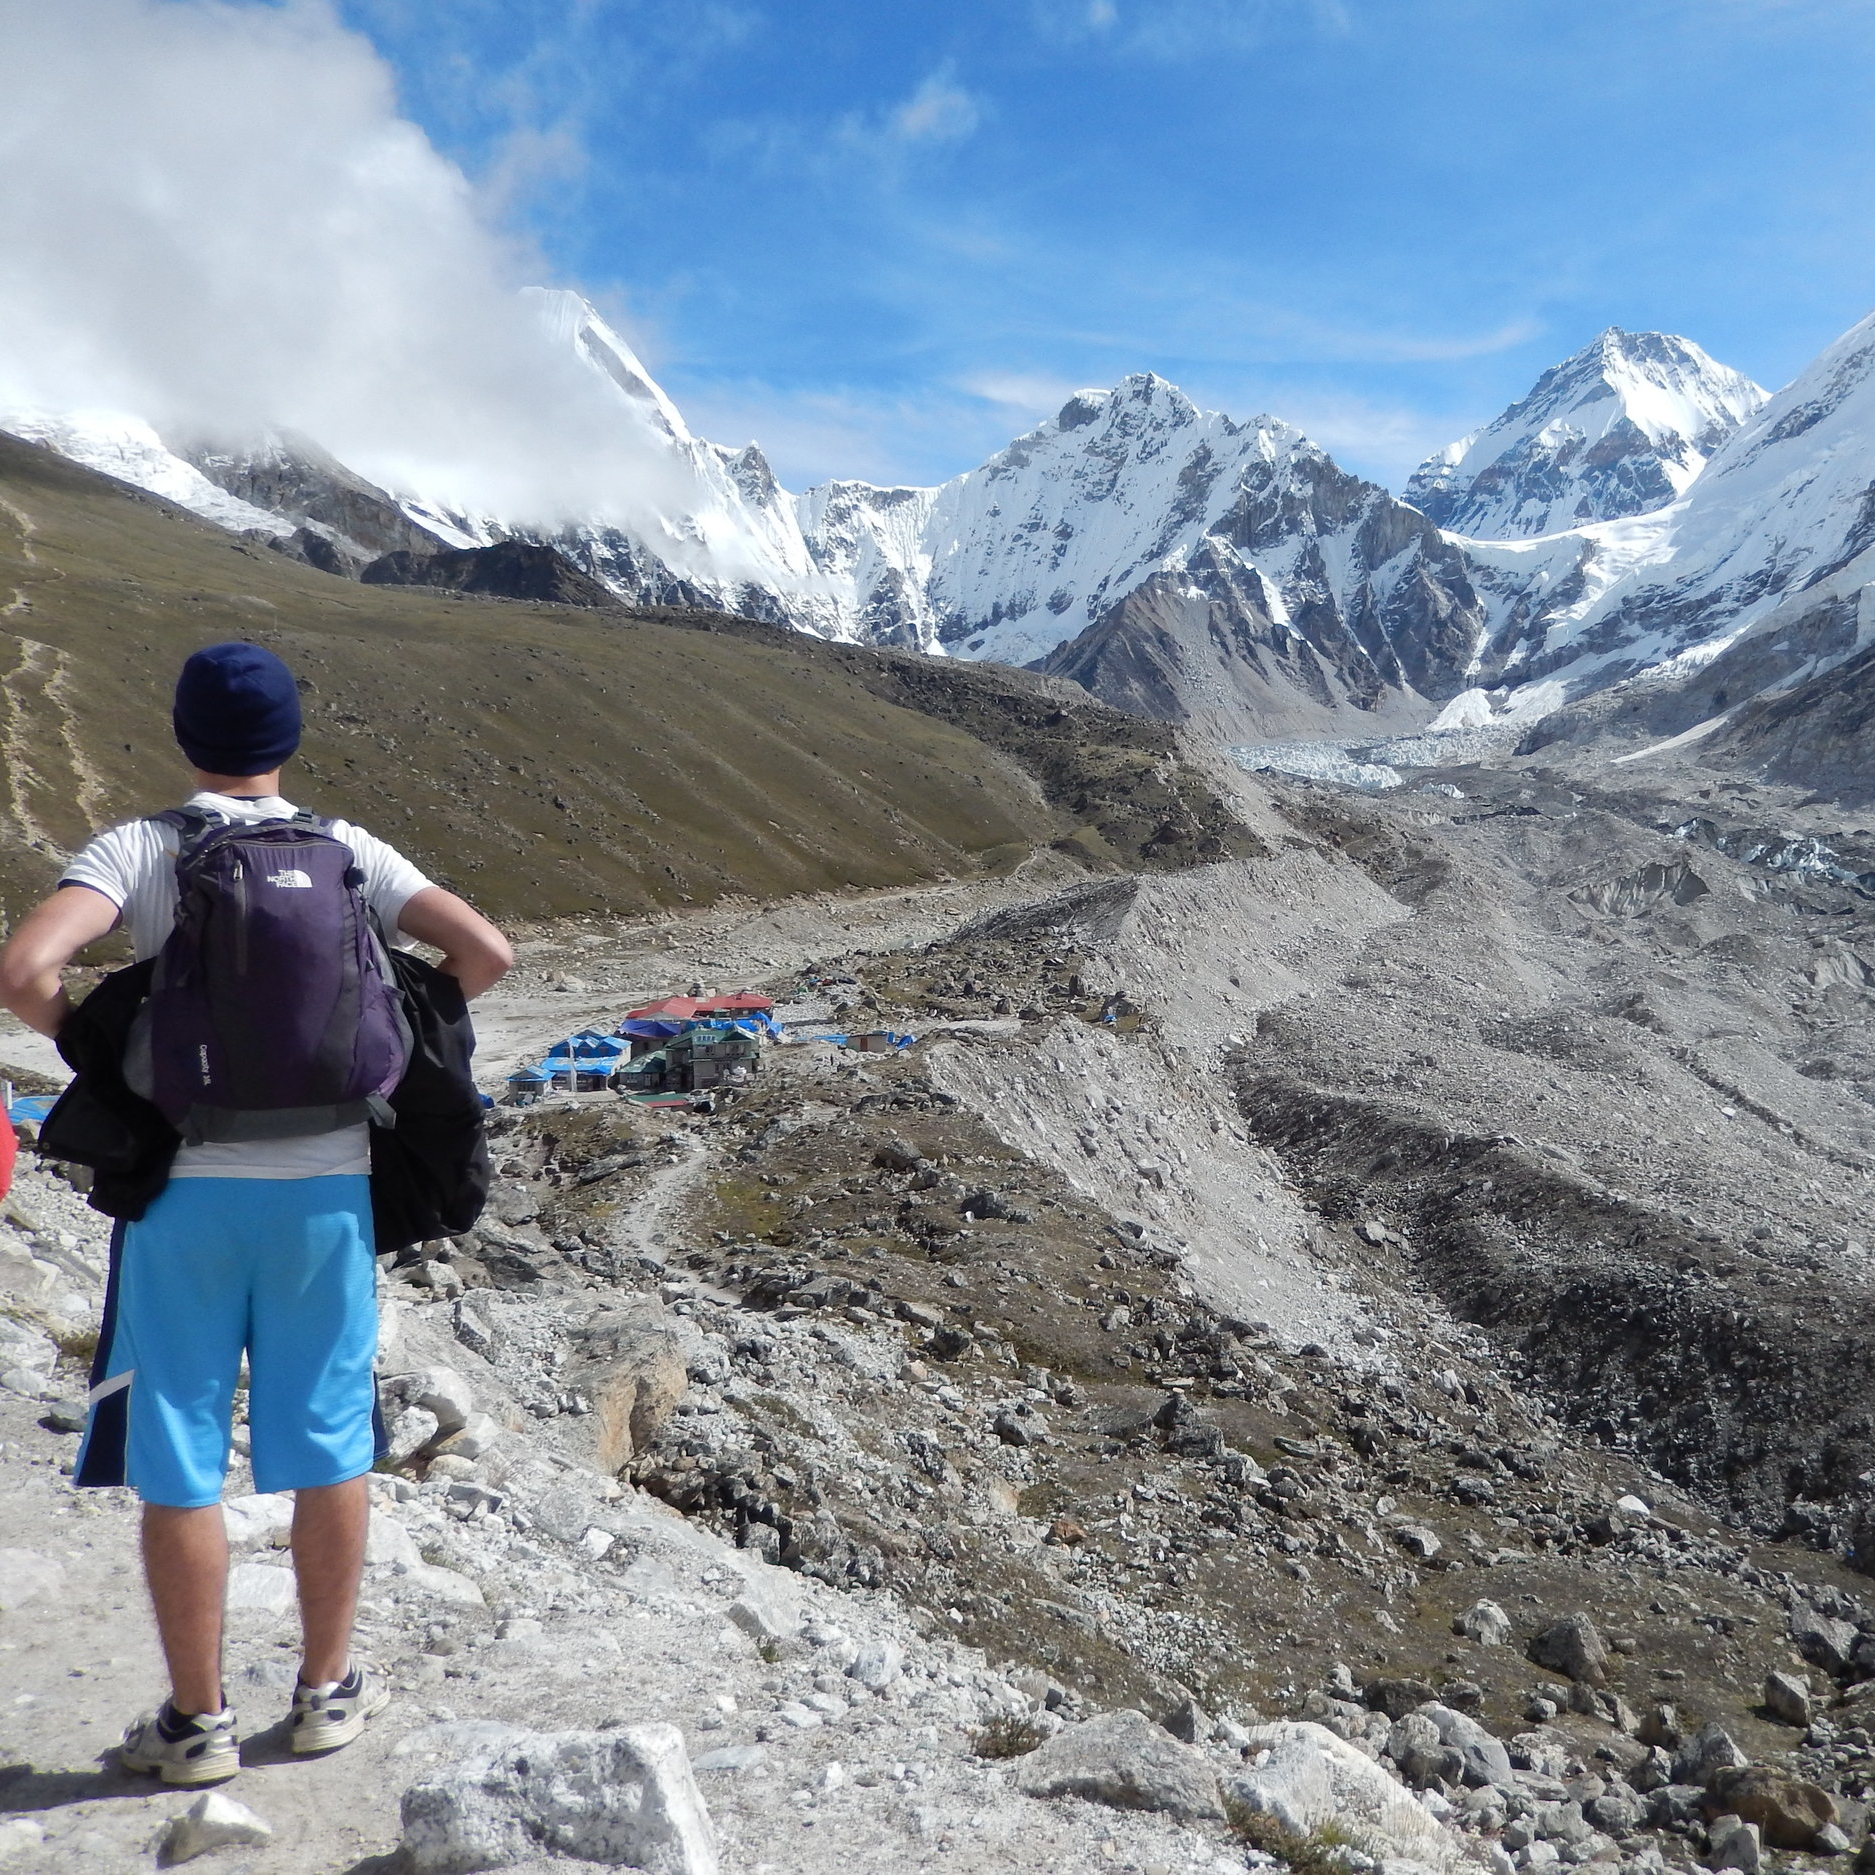 Everest Base Camp, September 2013